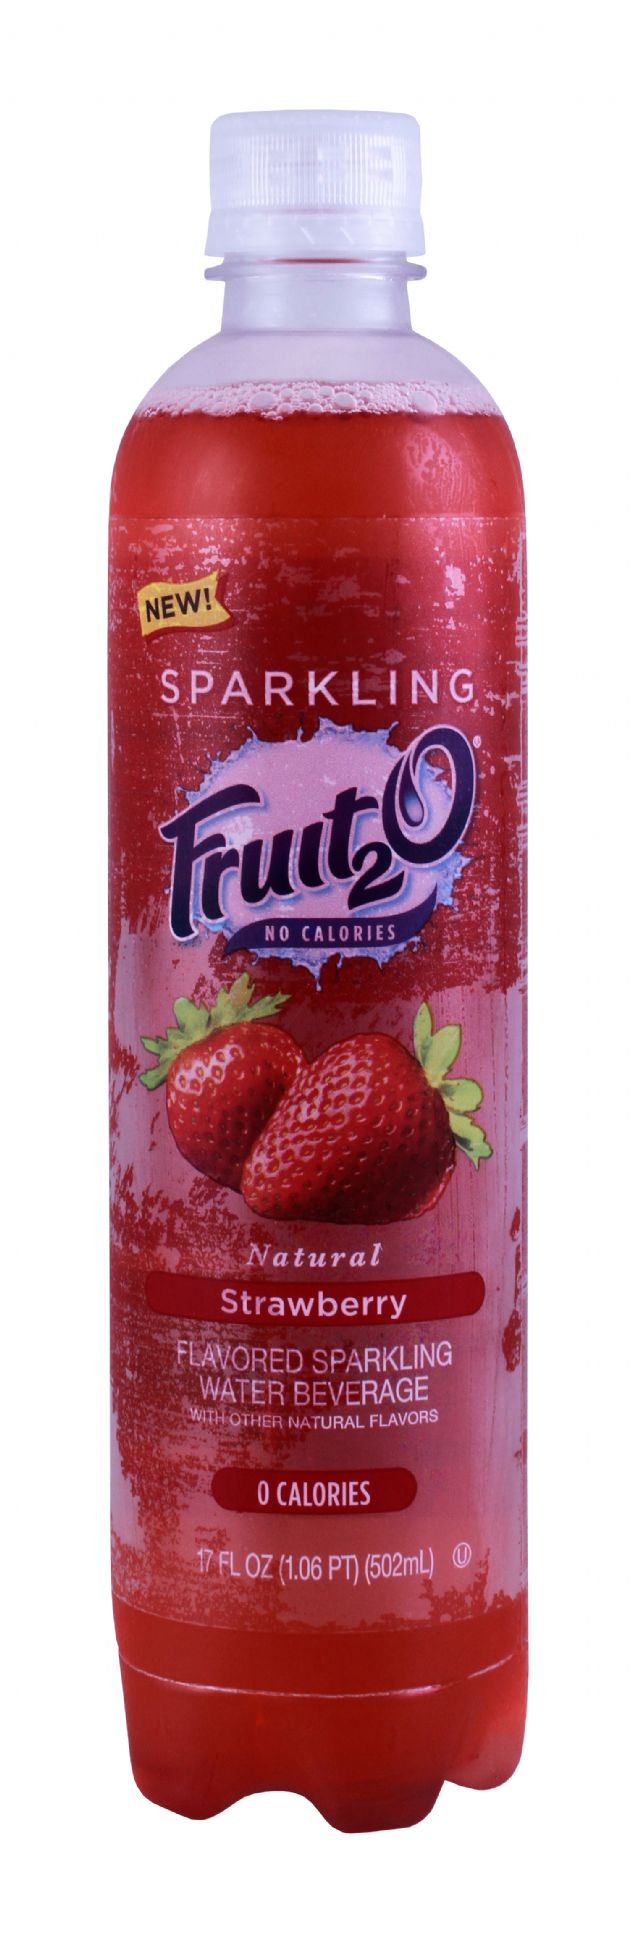 Sparkling Fruit2O: Fruit20 Strawberry Front